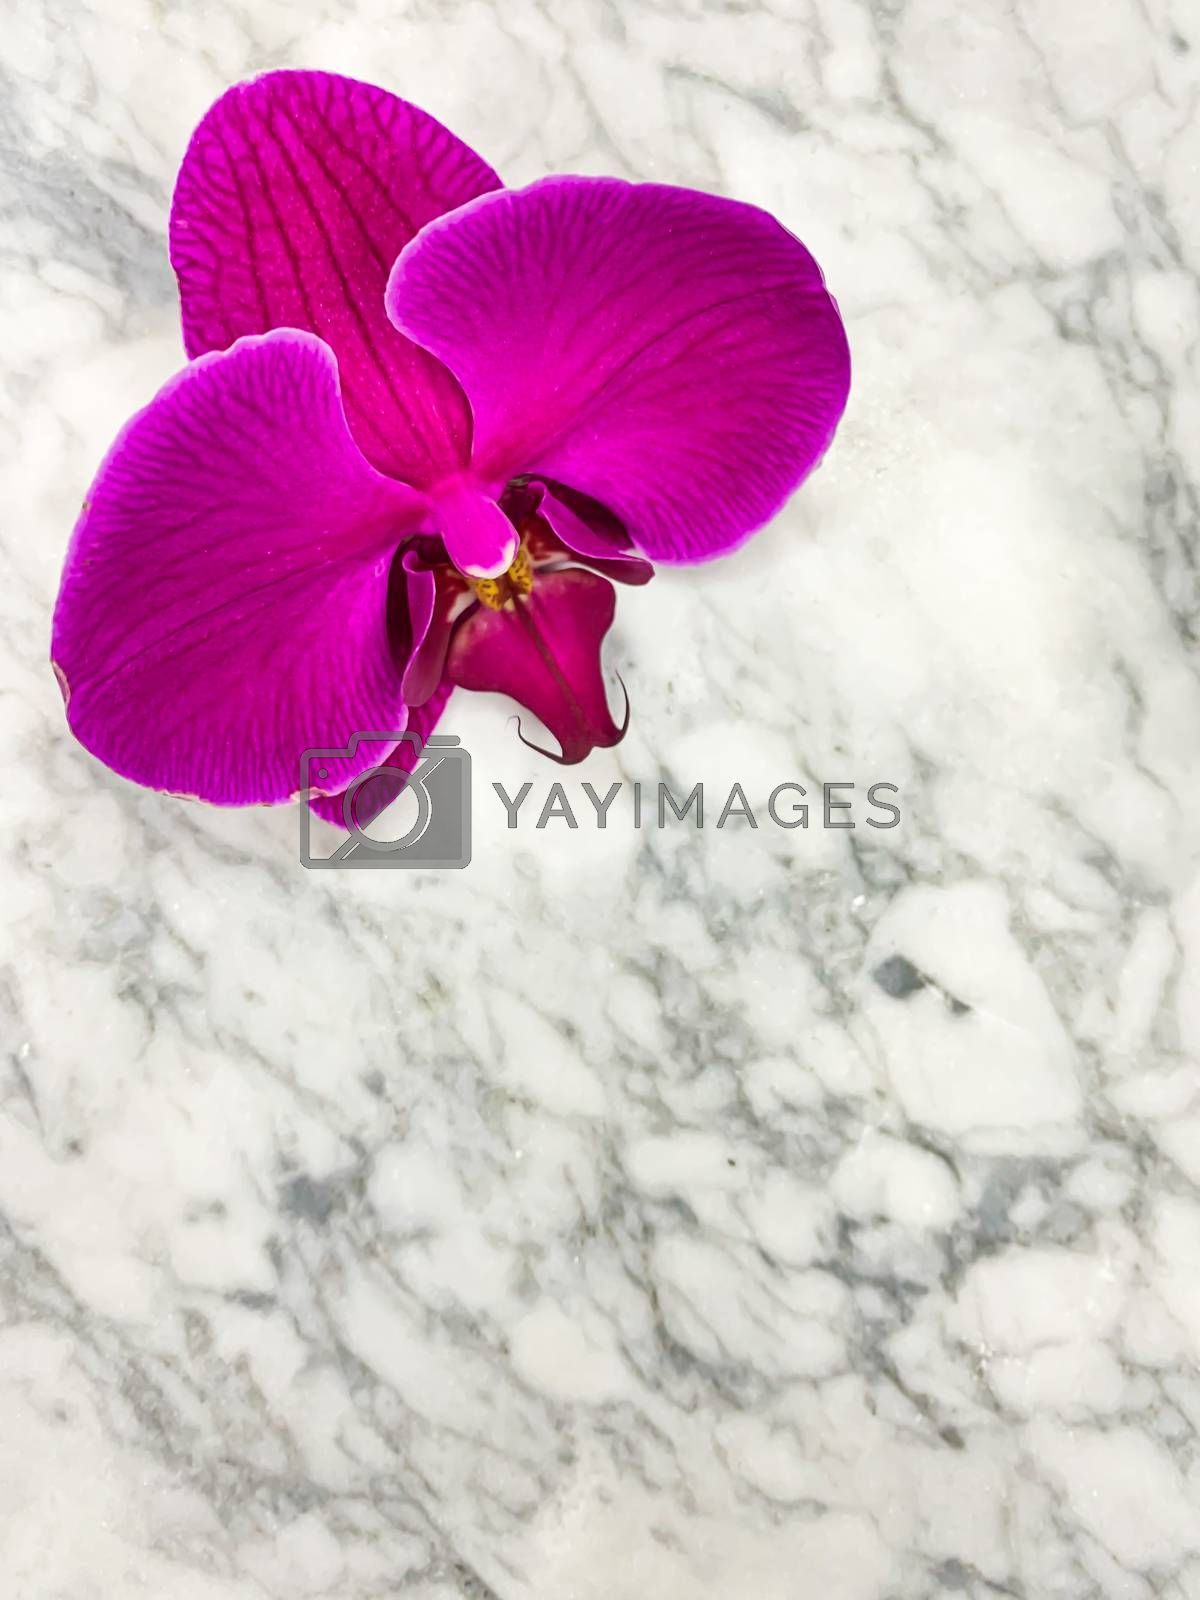 Purple Phalaenopsis orchid on a gray marble background. Vertical wallpaper postcard with empty space for text